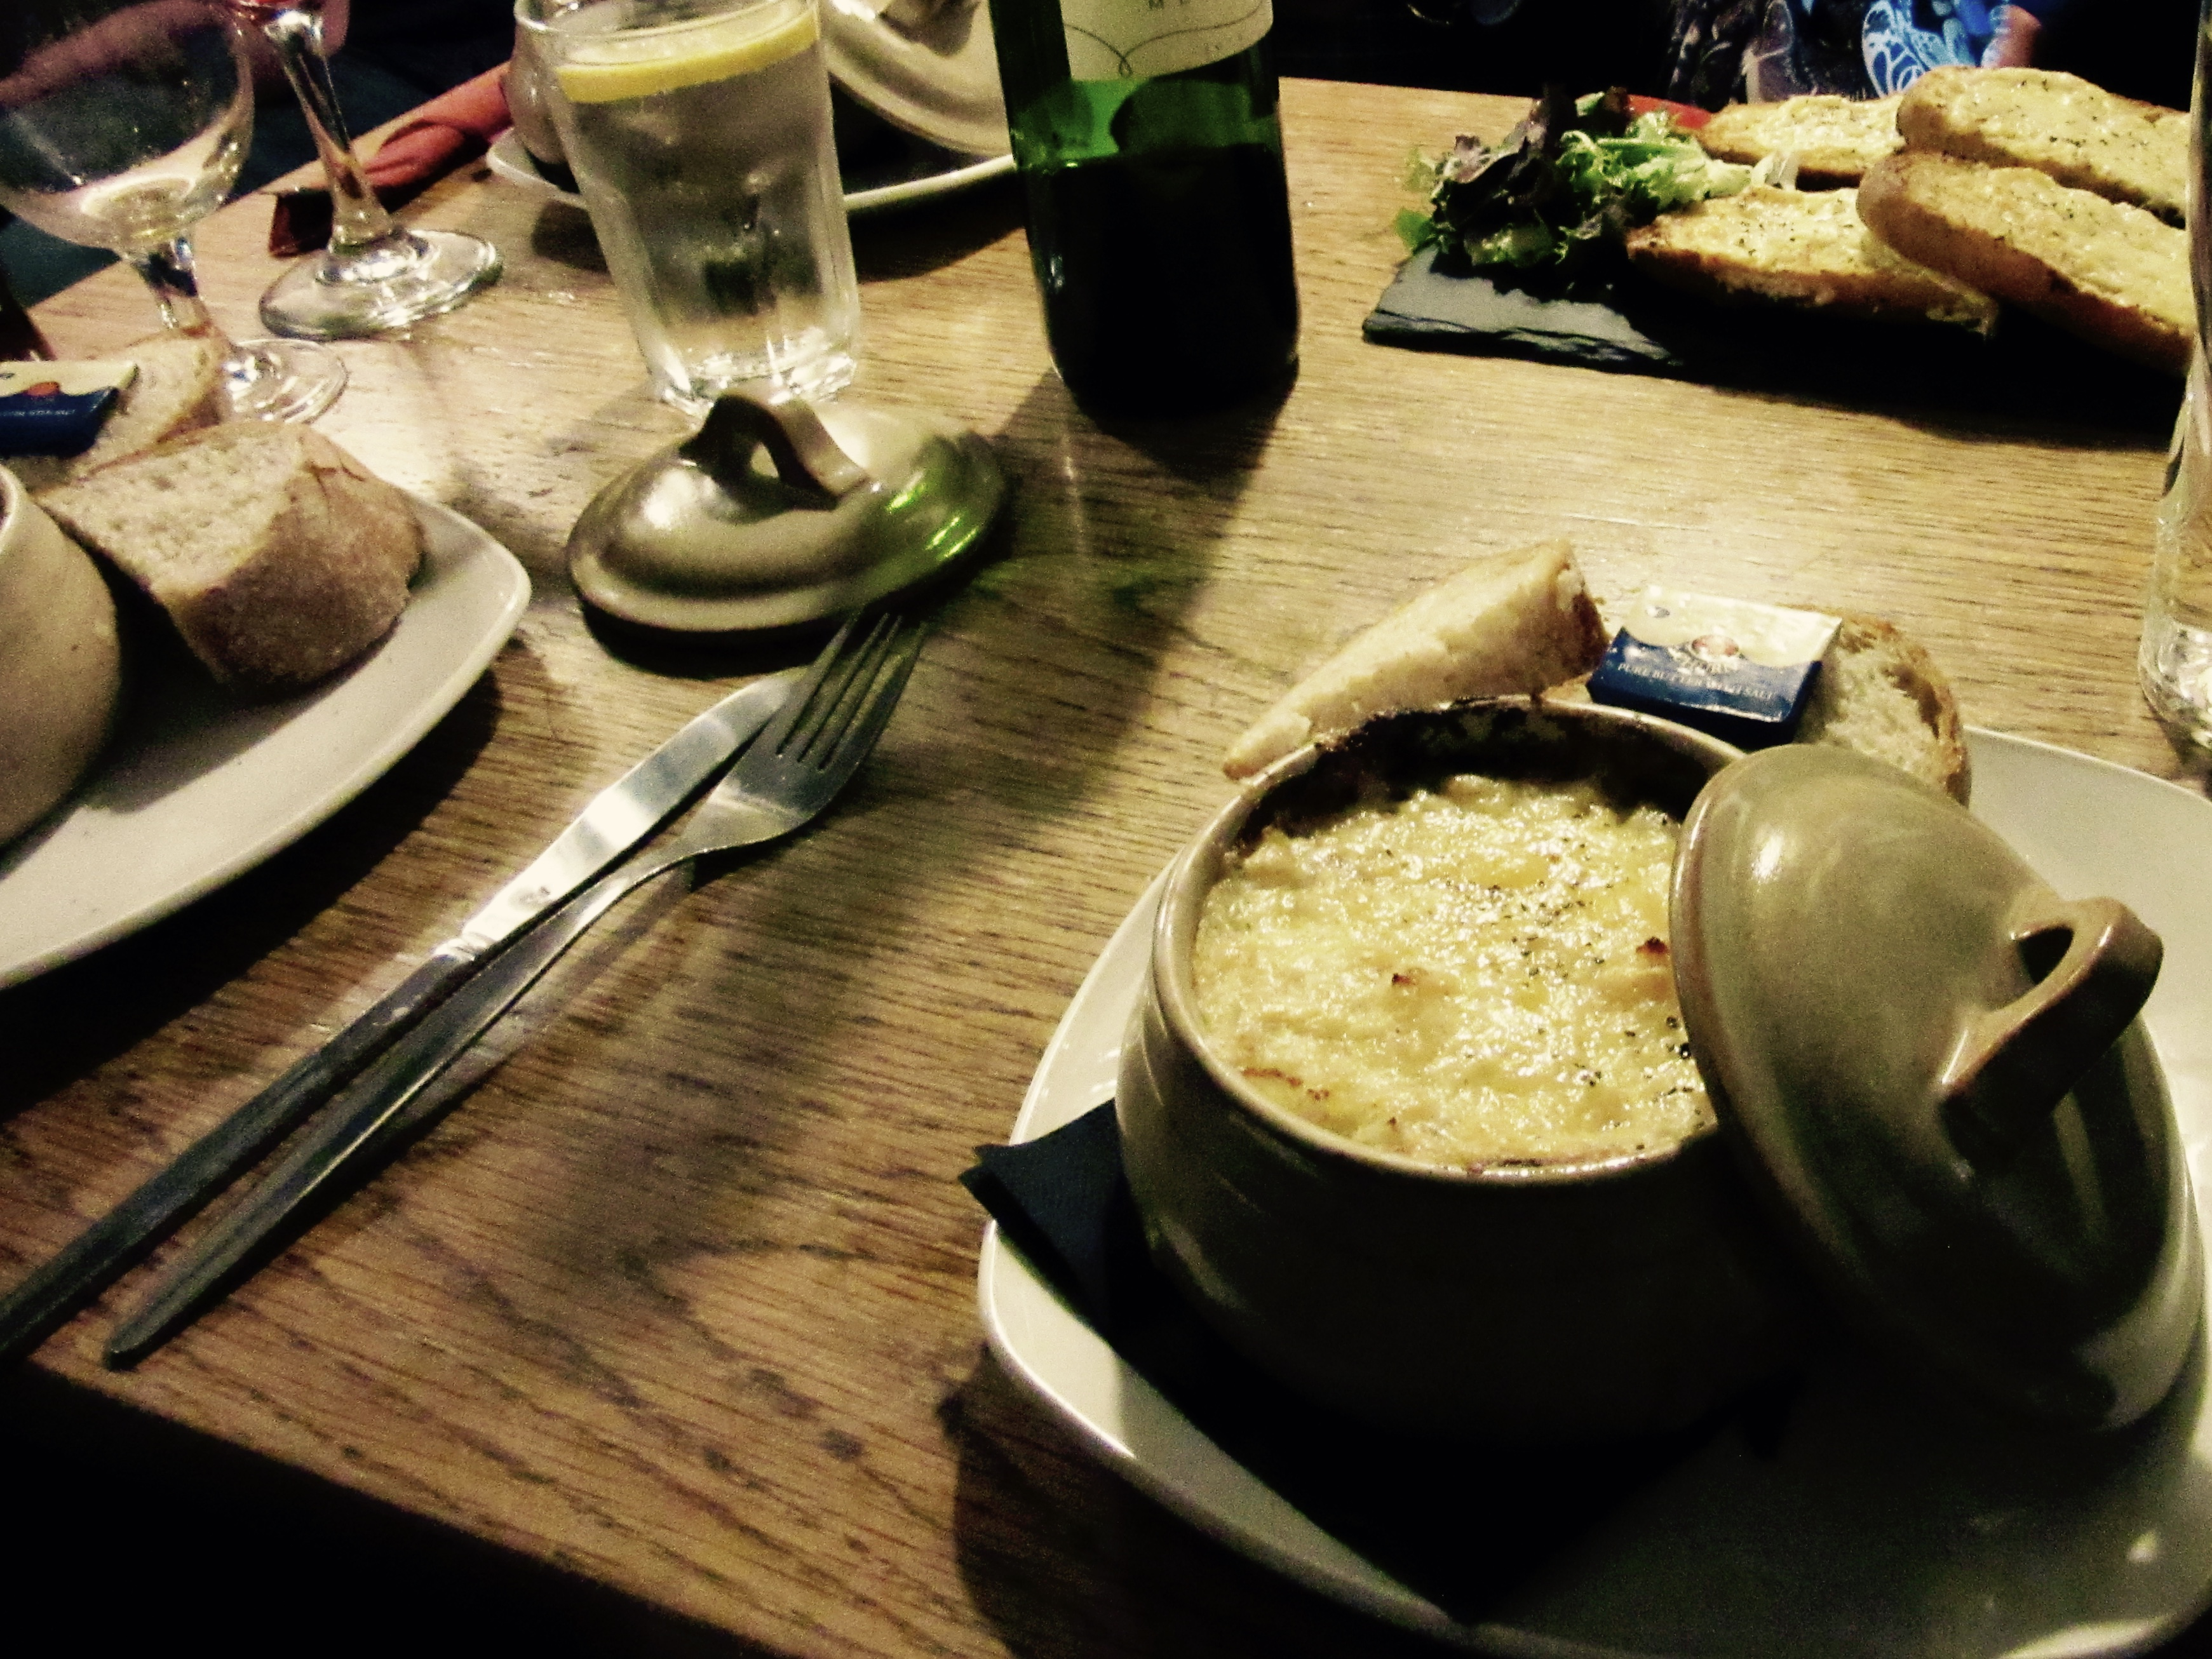 Simple Dishes: Venison Casserole at the The Ensign Ewart in Edinburgh